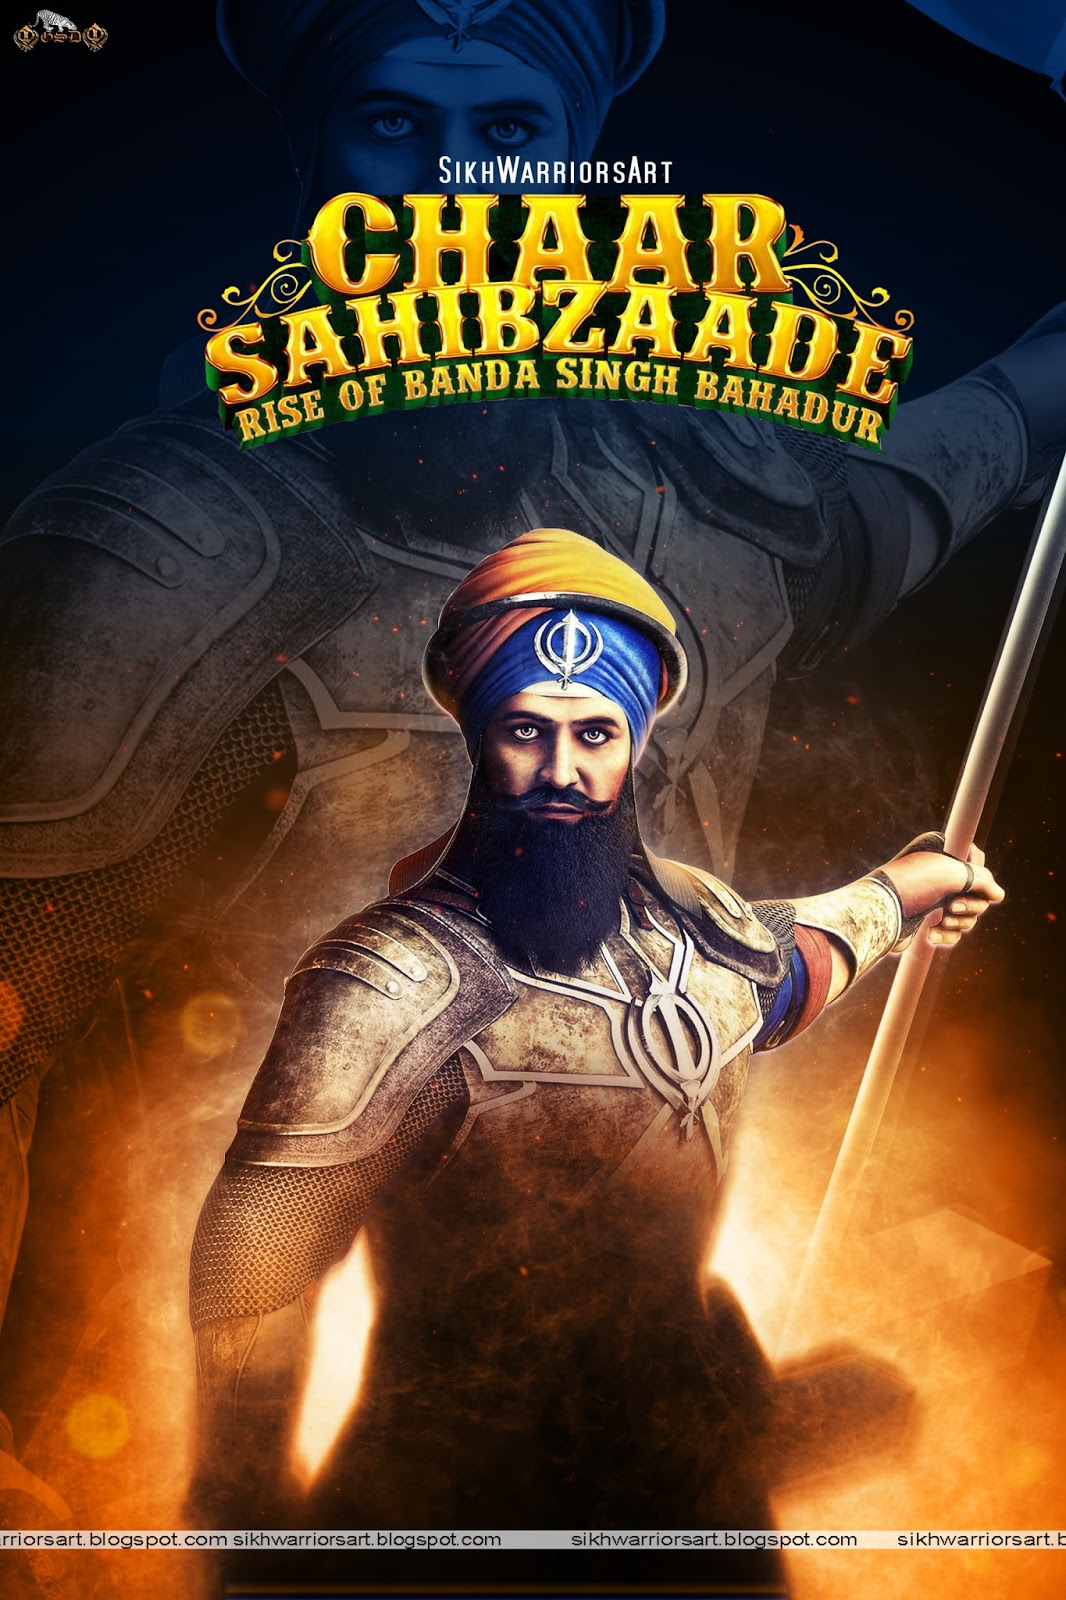 Chaar sahibzaade trailer 2 - Swv reality show episodes